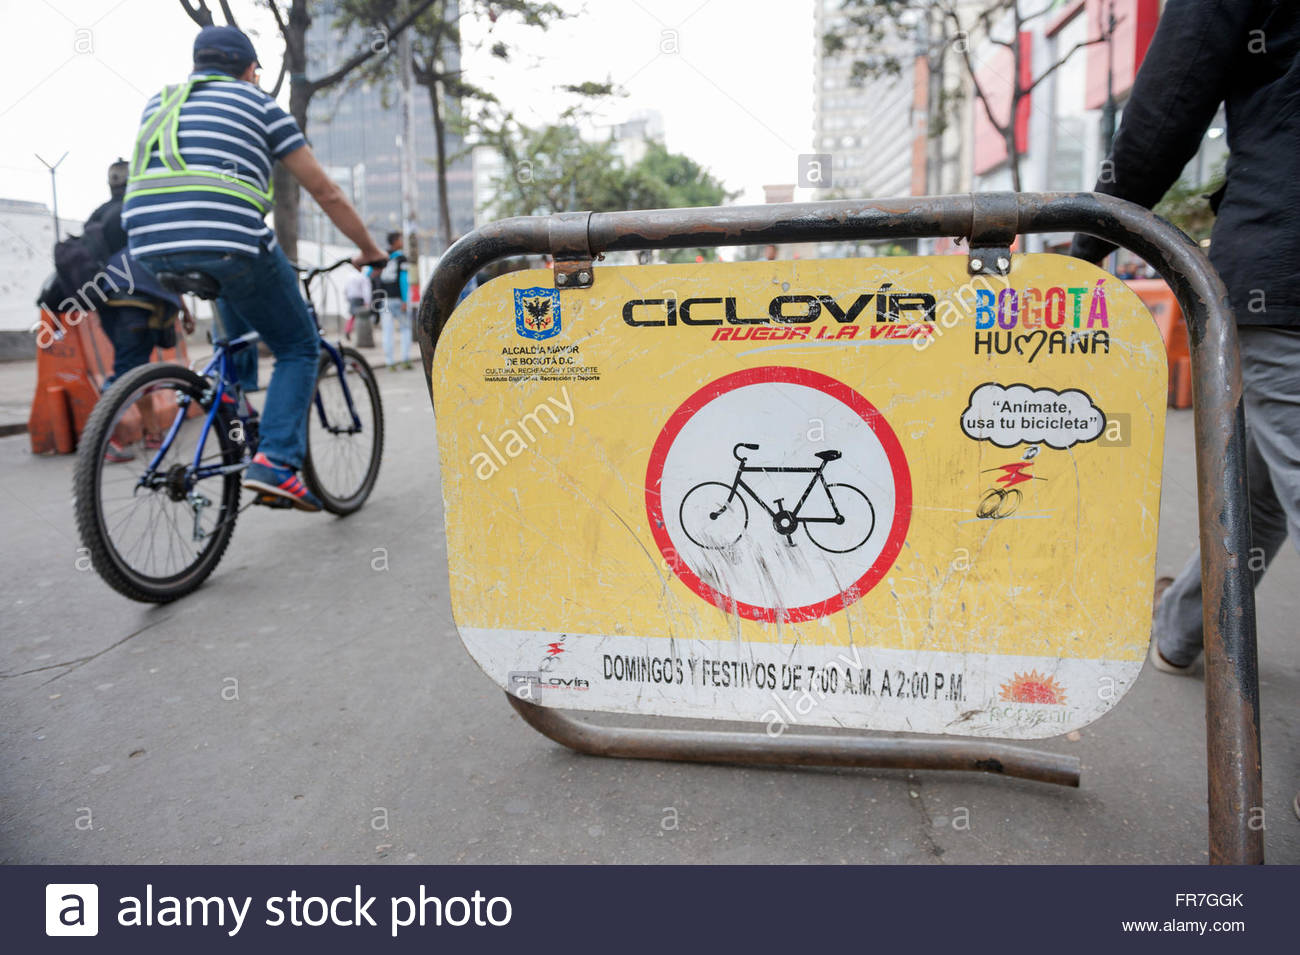 Bogota Colombia Ciclovia cycle route cordoned off through the city on certain days. - Stock Image